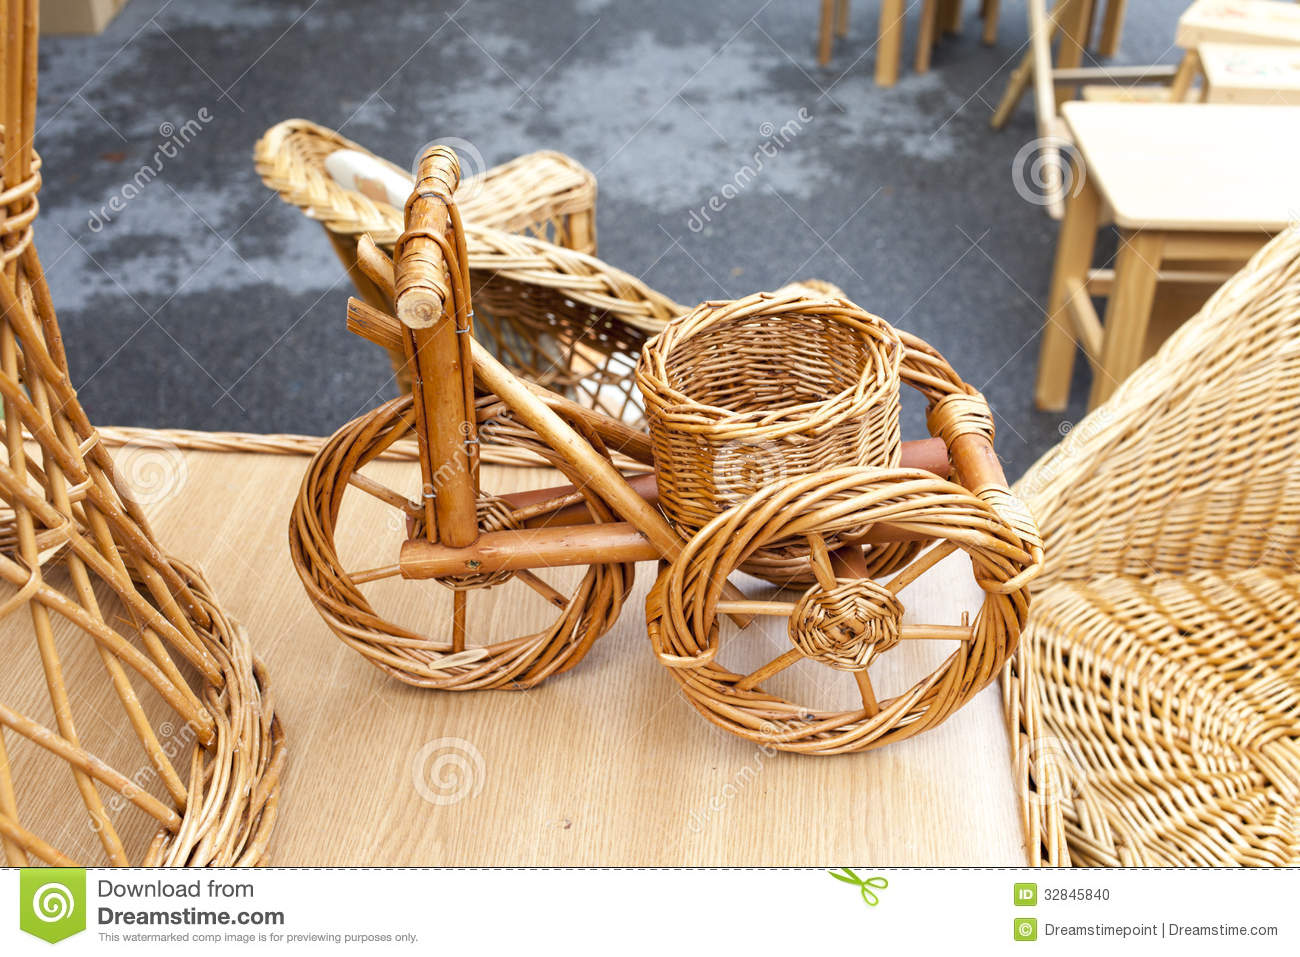 Wicker bicycle and furniture stock photo image 32845840 - Muebles de mimbre ...